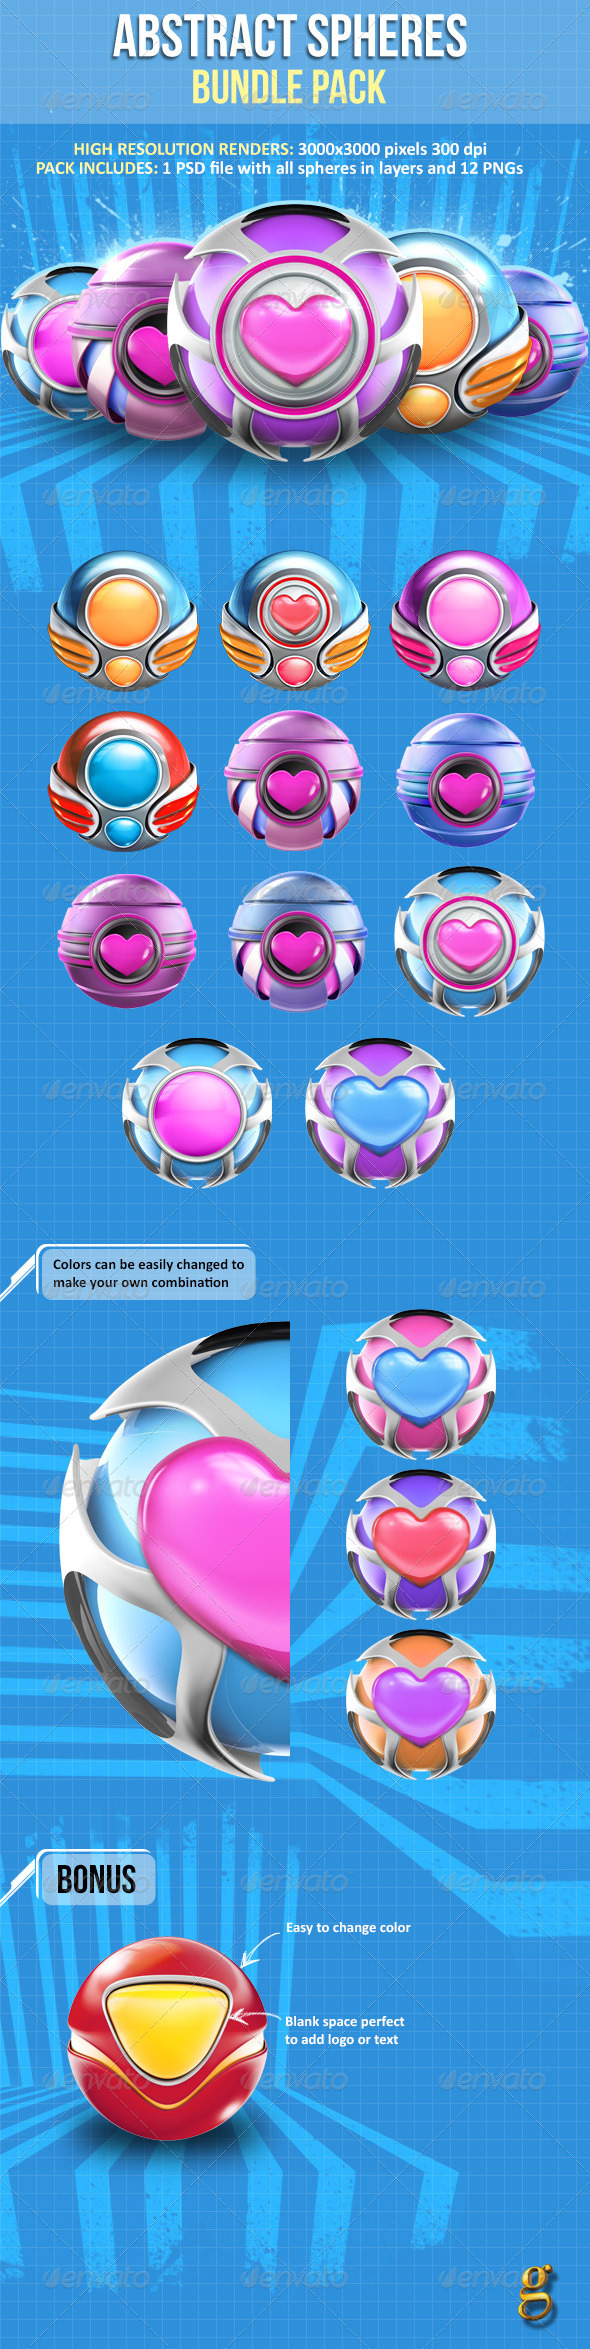 GraphicRiver Abstract 3D Sphere Bundle Pack 6625490